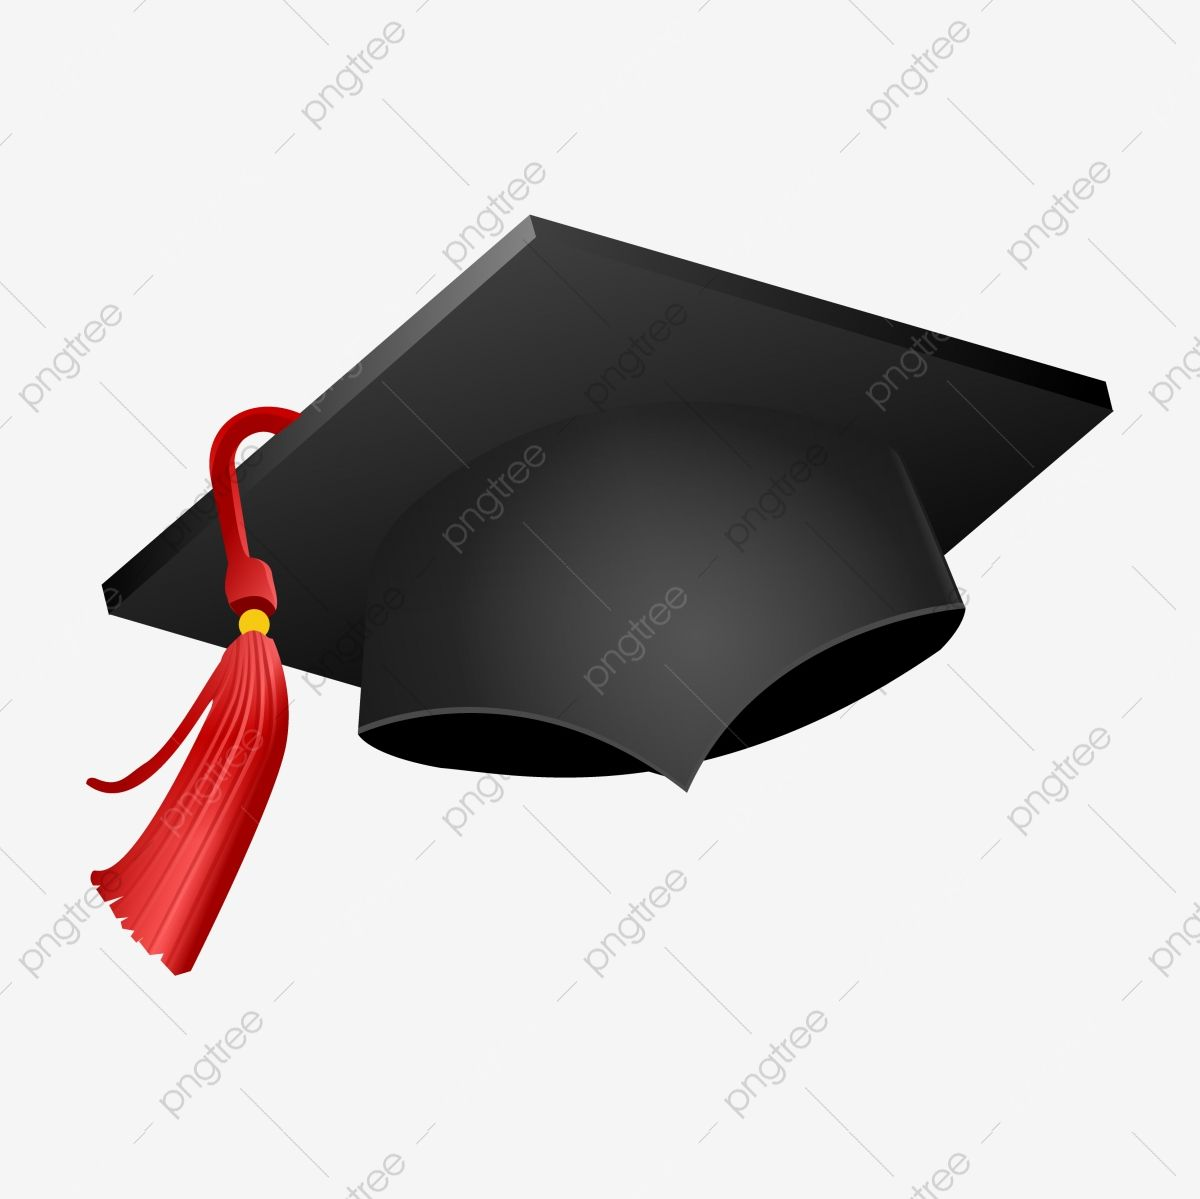 Vector Graduation Hat Hat Clipart School Graduation Png And Vector With Transparent Background For Free Download Logo Design Free Templates Graduation Hat Logo Design Free